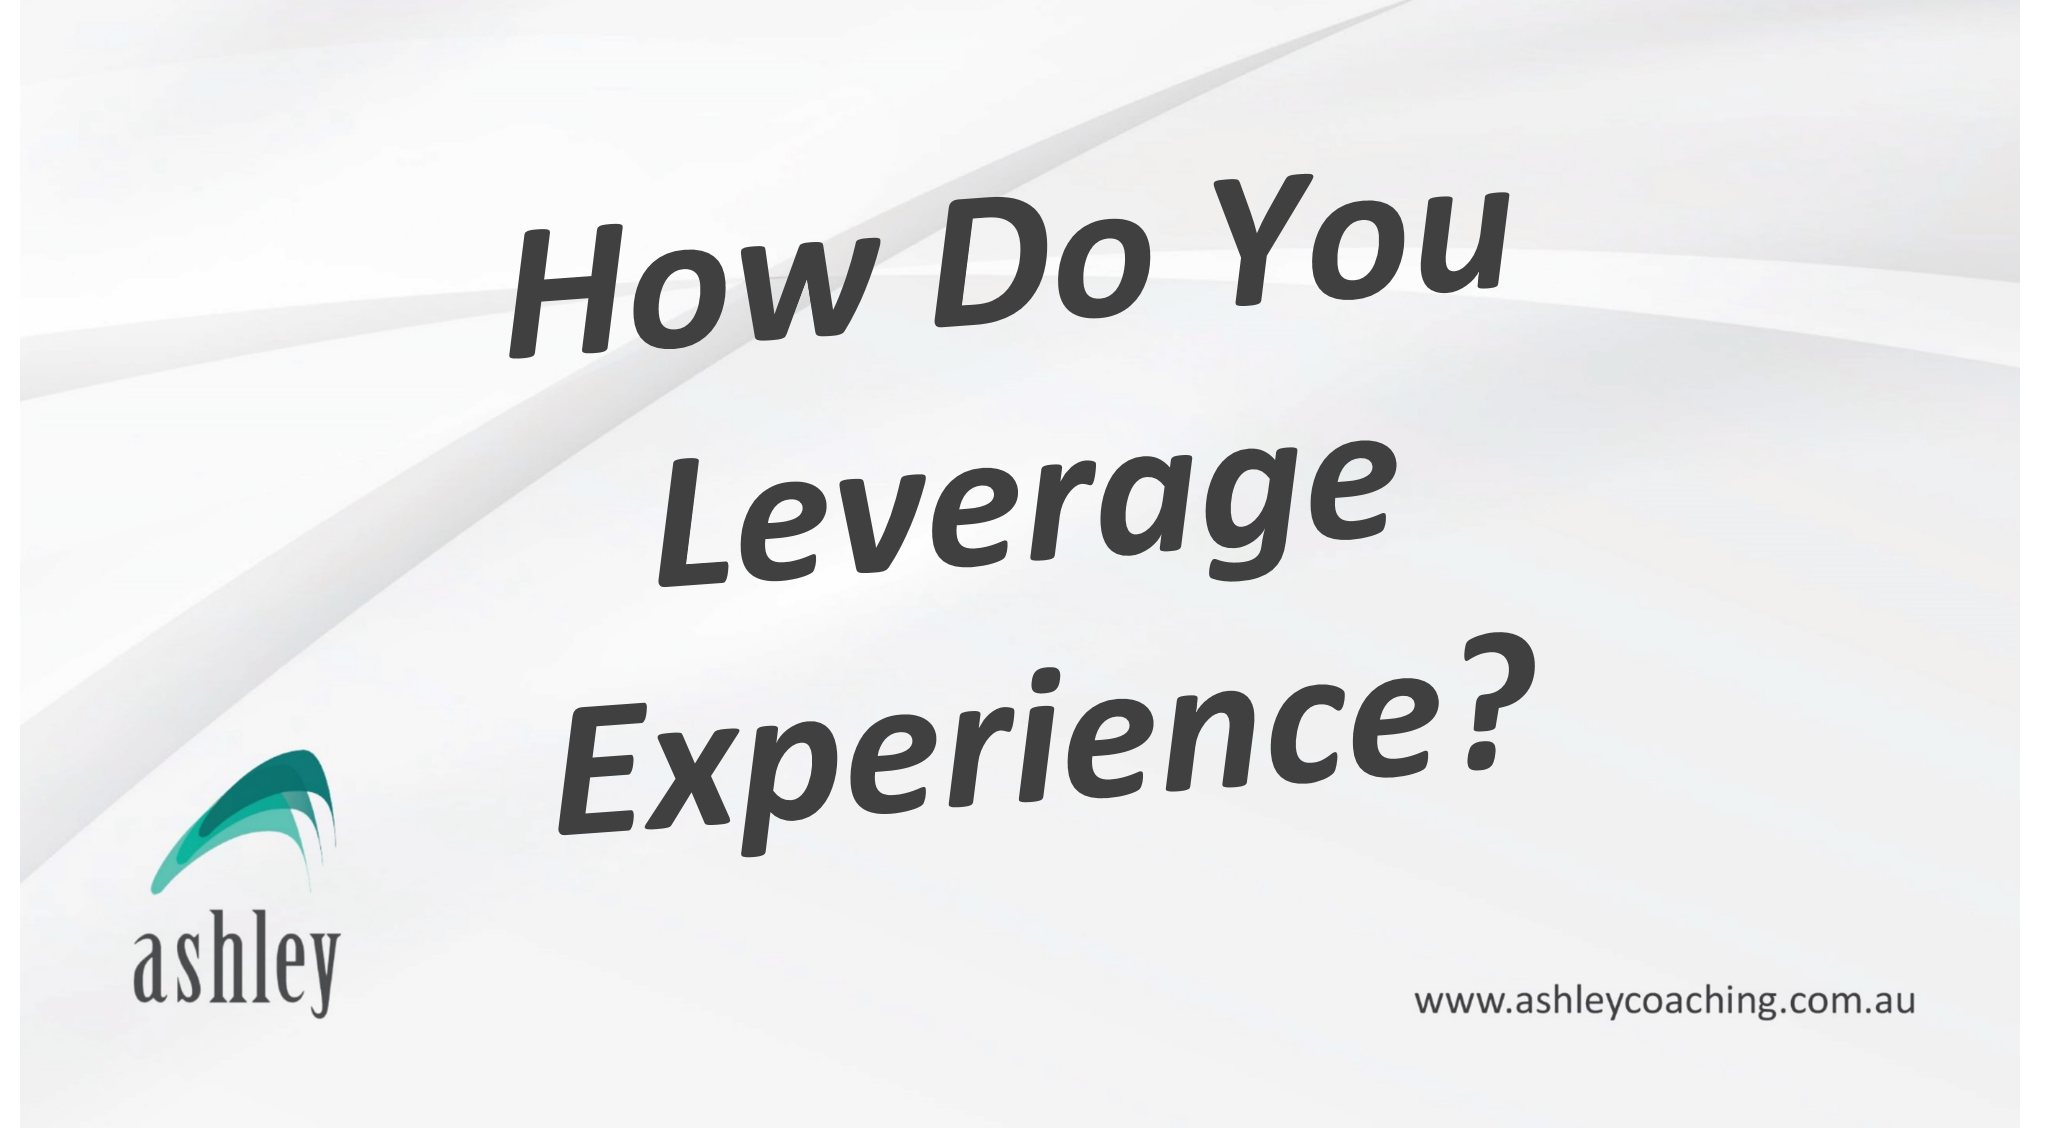 How Do You Leverage Experience?